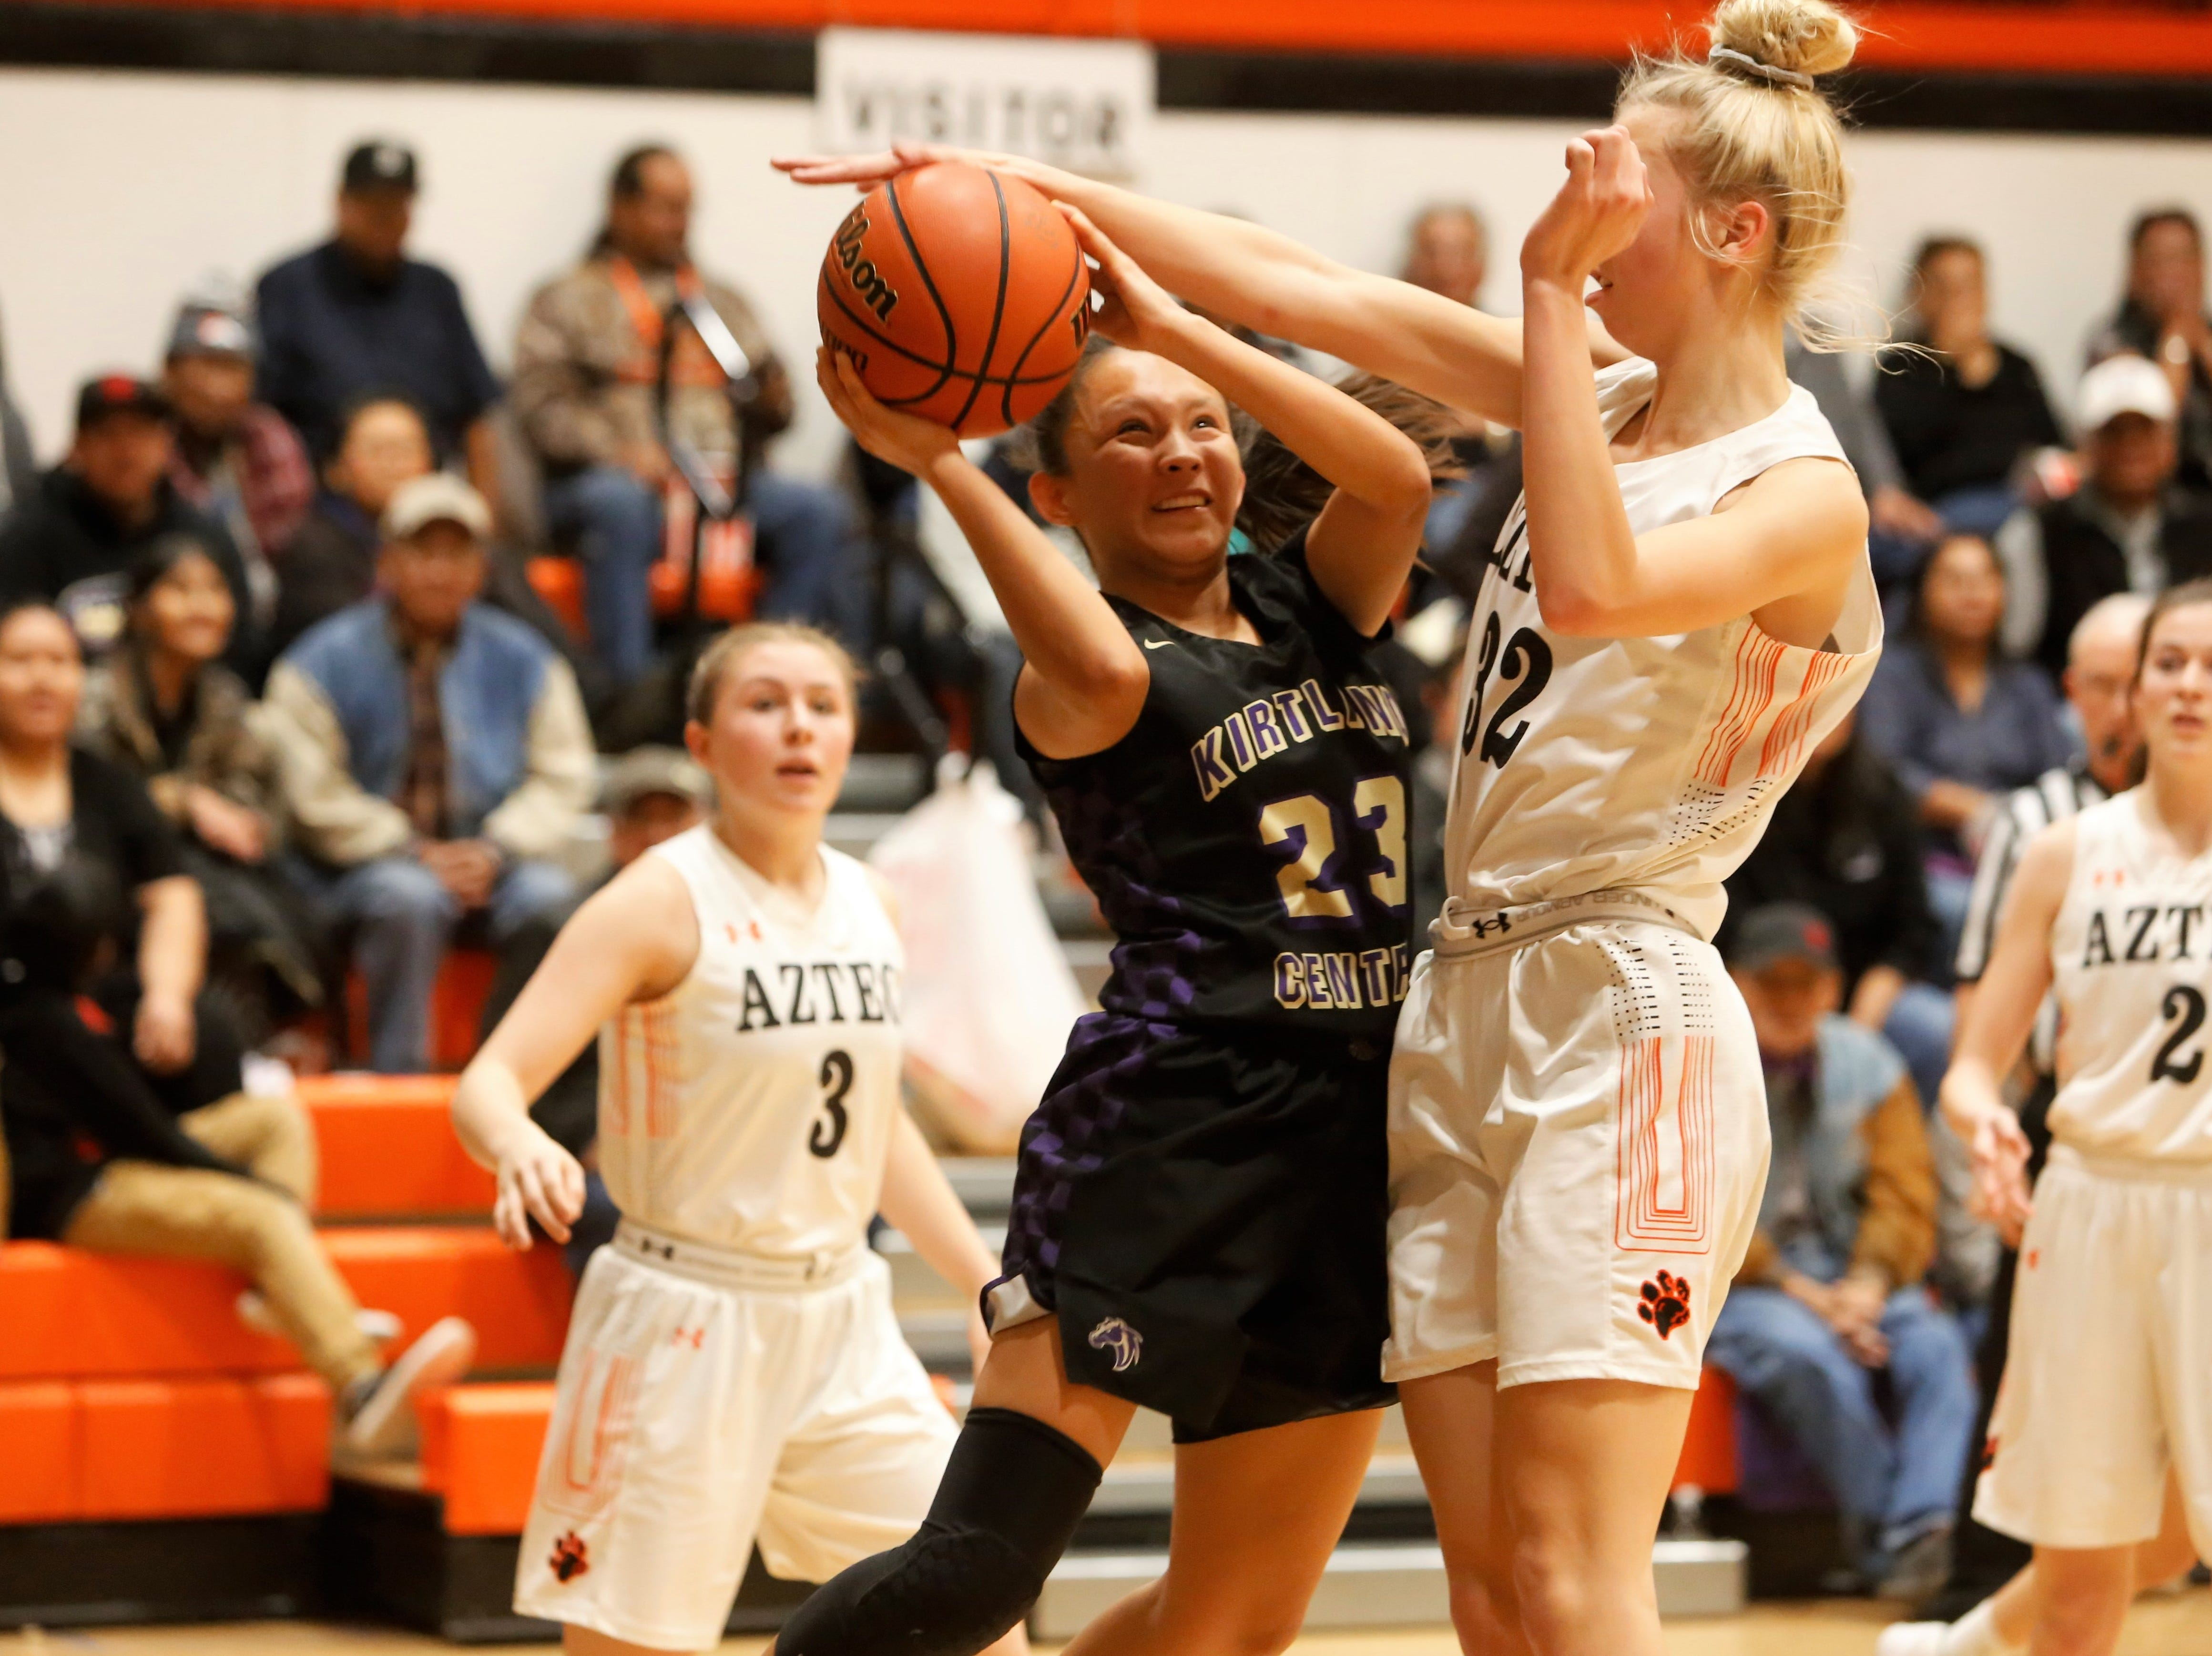 Kirtland Central's Avery Begay attacks the basket and gets fouled by Aztec's Reigan Weaver during Friday's District 1-4A game at Lillywhite Gym in Aztec.